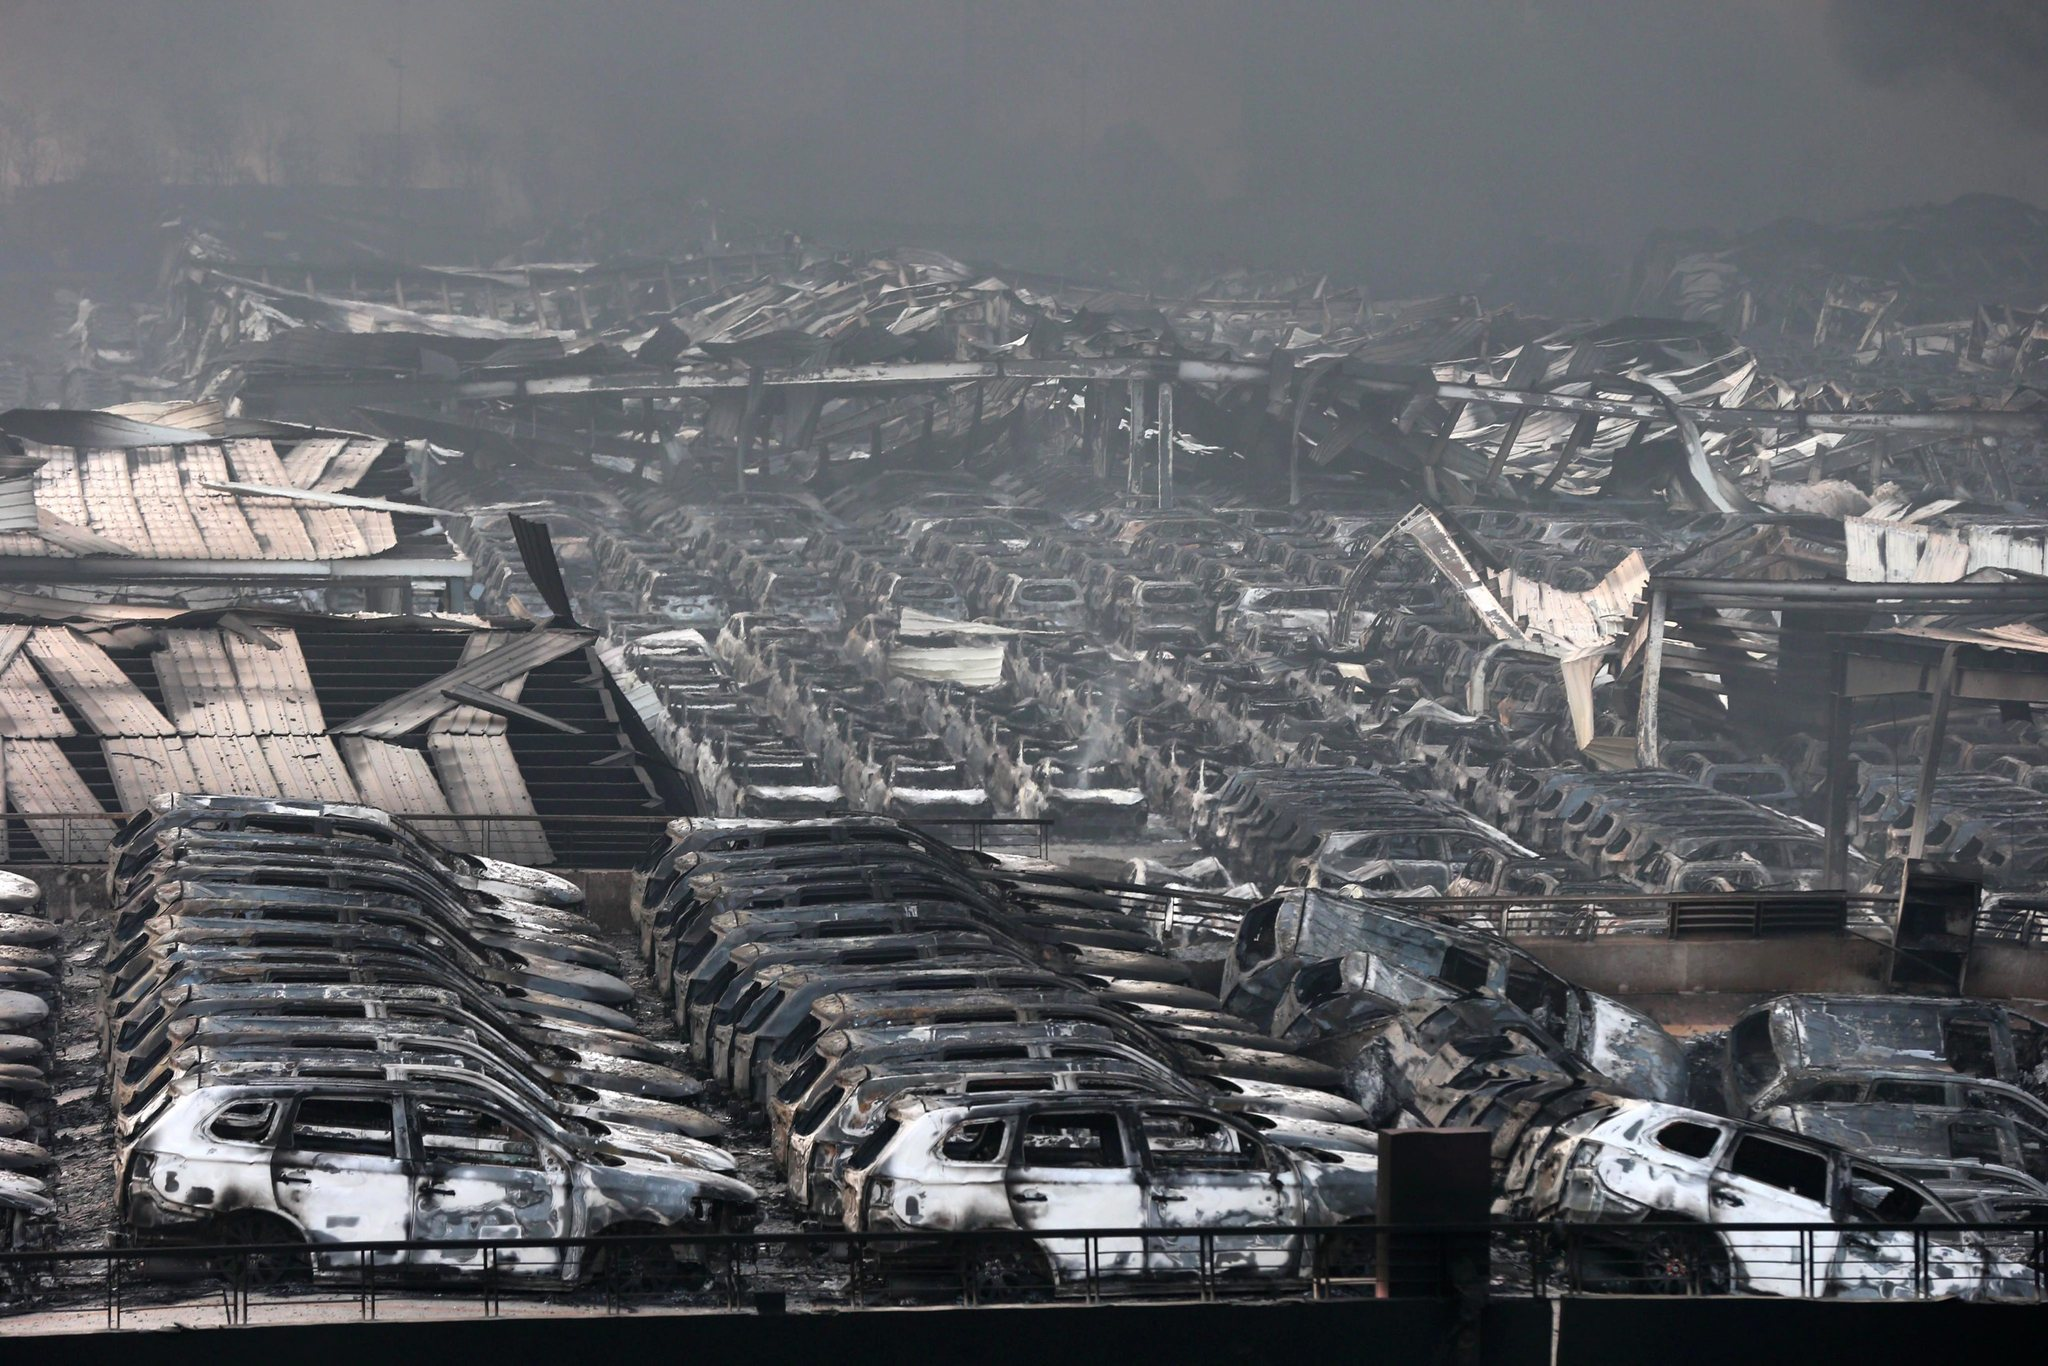 'Mama, save me, I can't bear it': A firefighter's cry in China's inferno